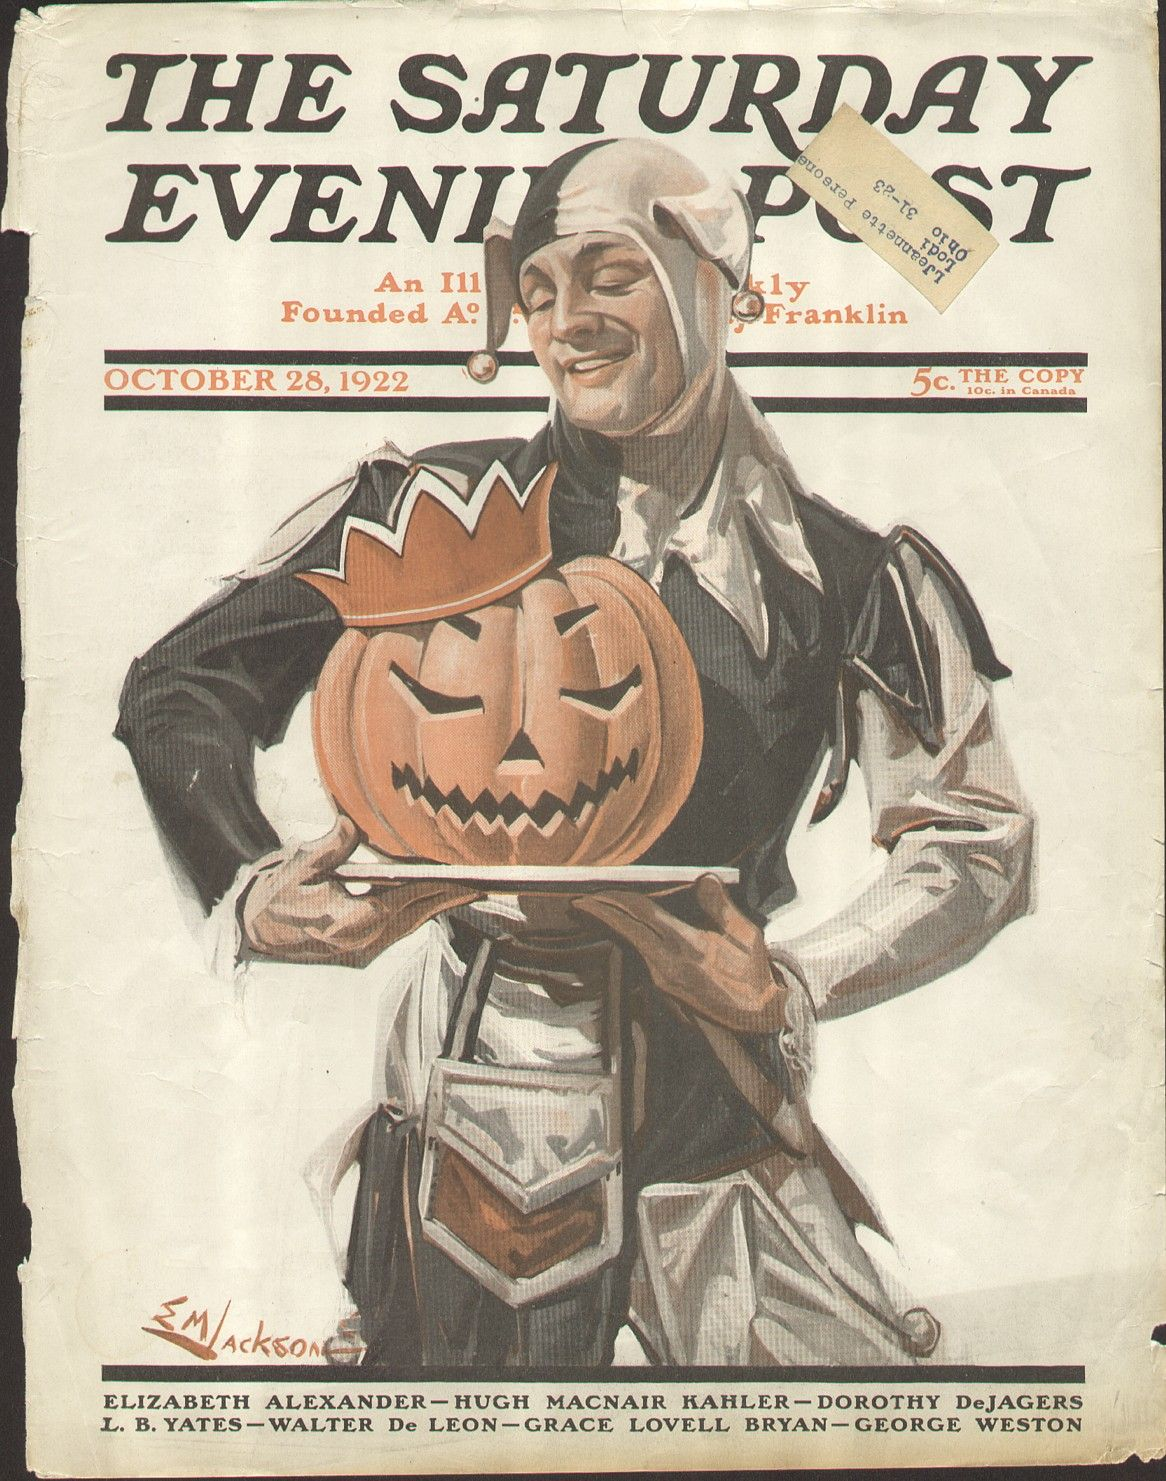 saturday evening post covers - google search   saturday evening post